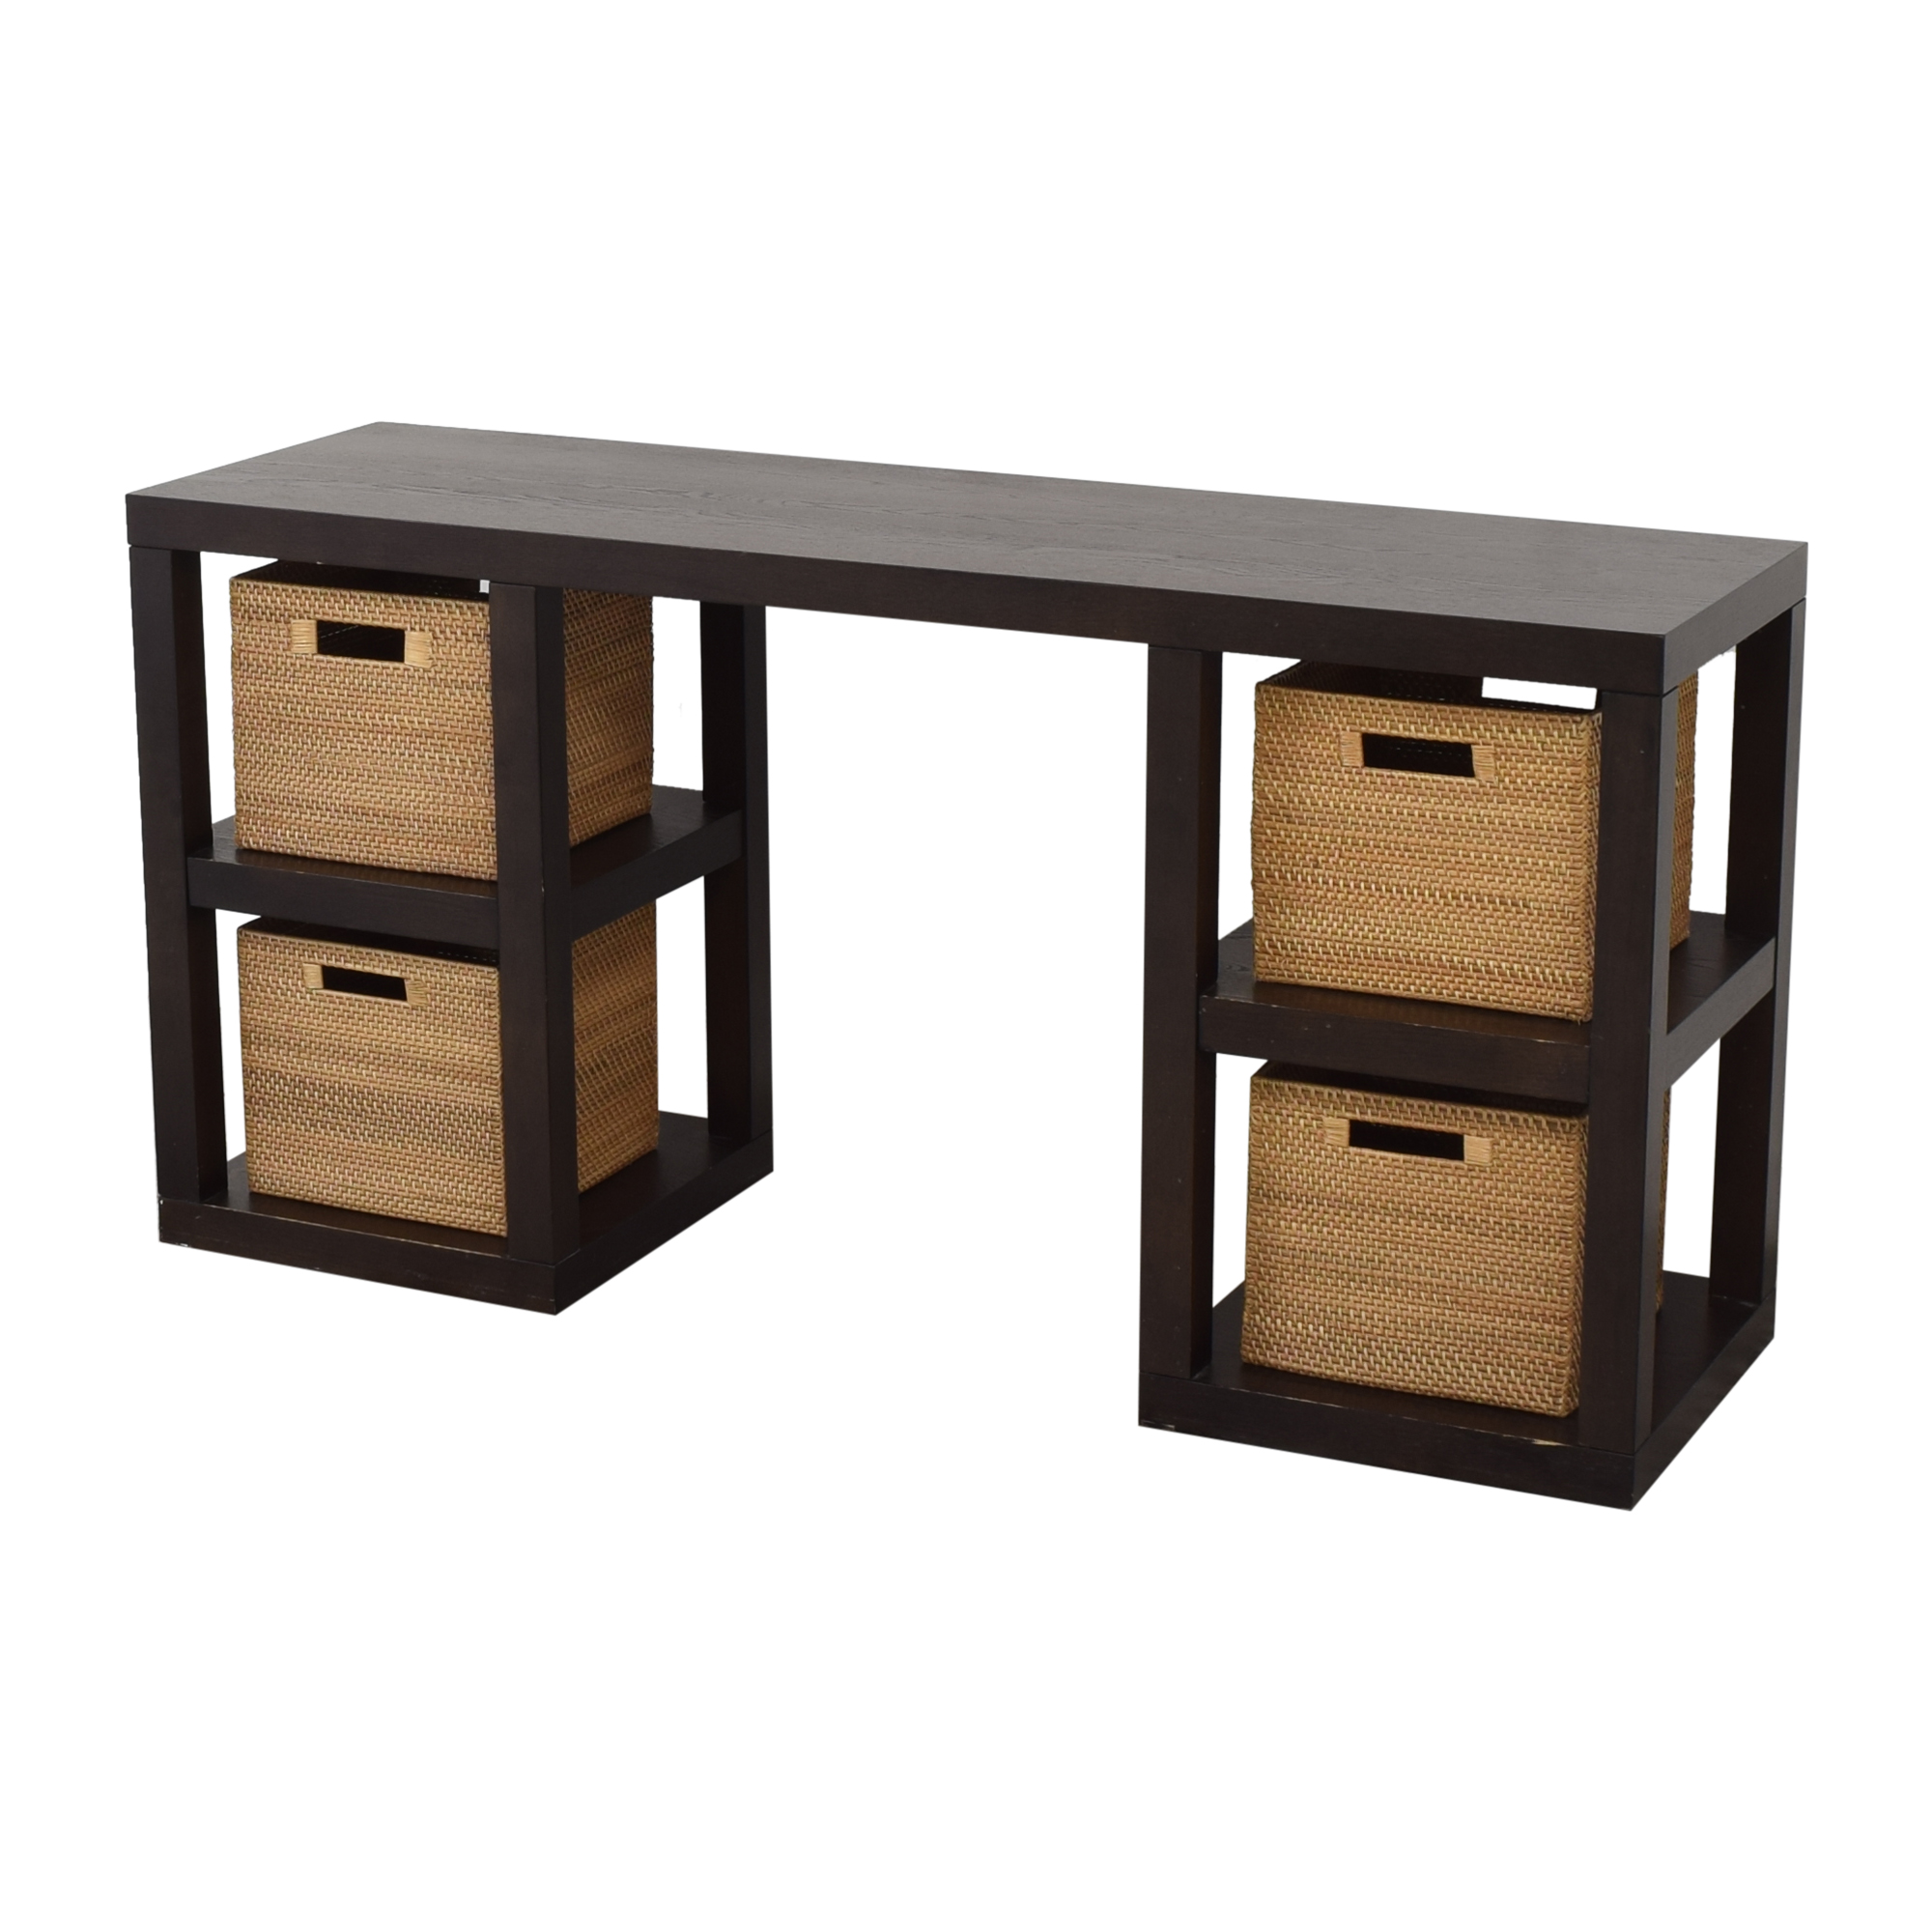 West Elm West Elm 2 x 2 Console Desk